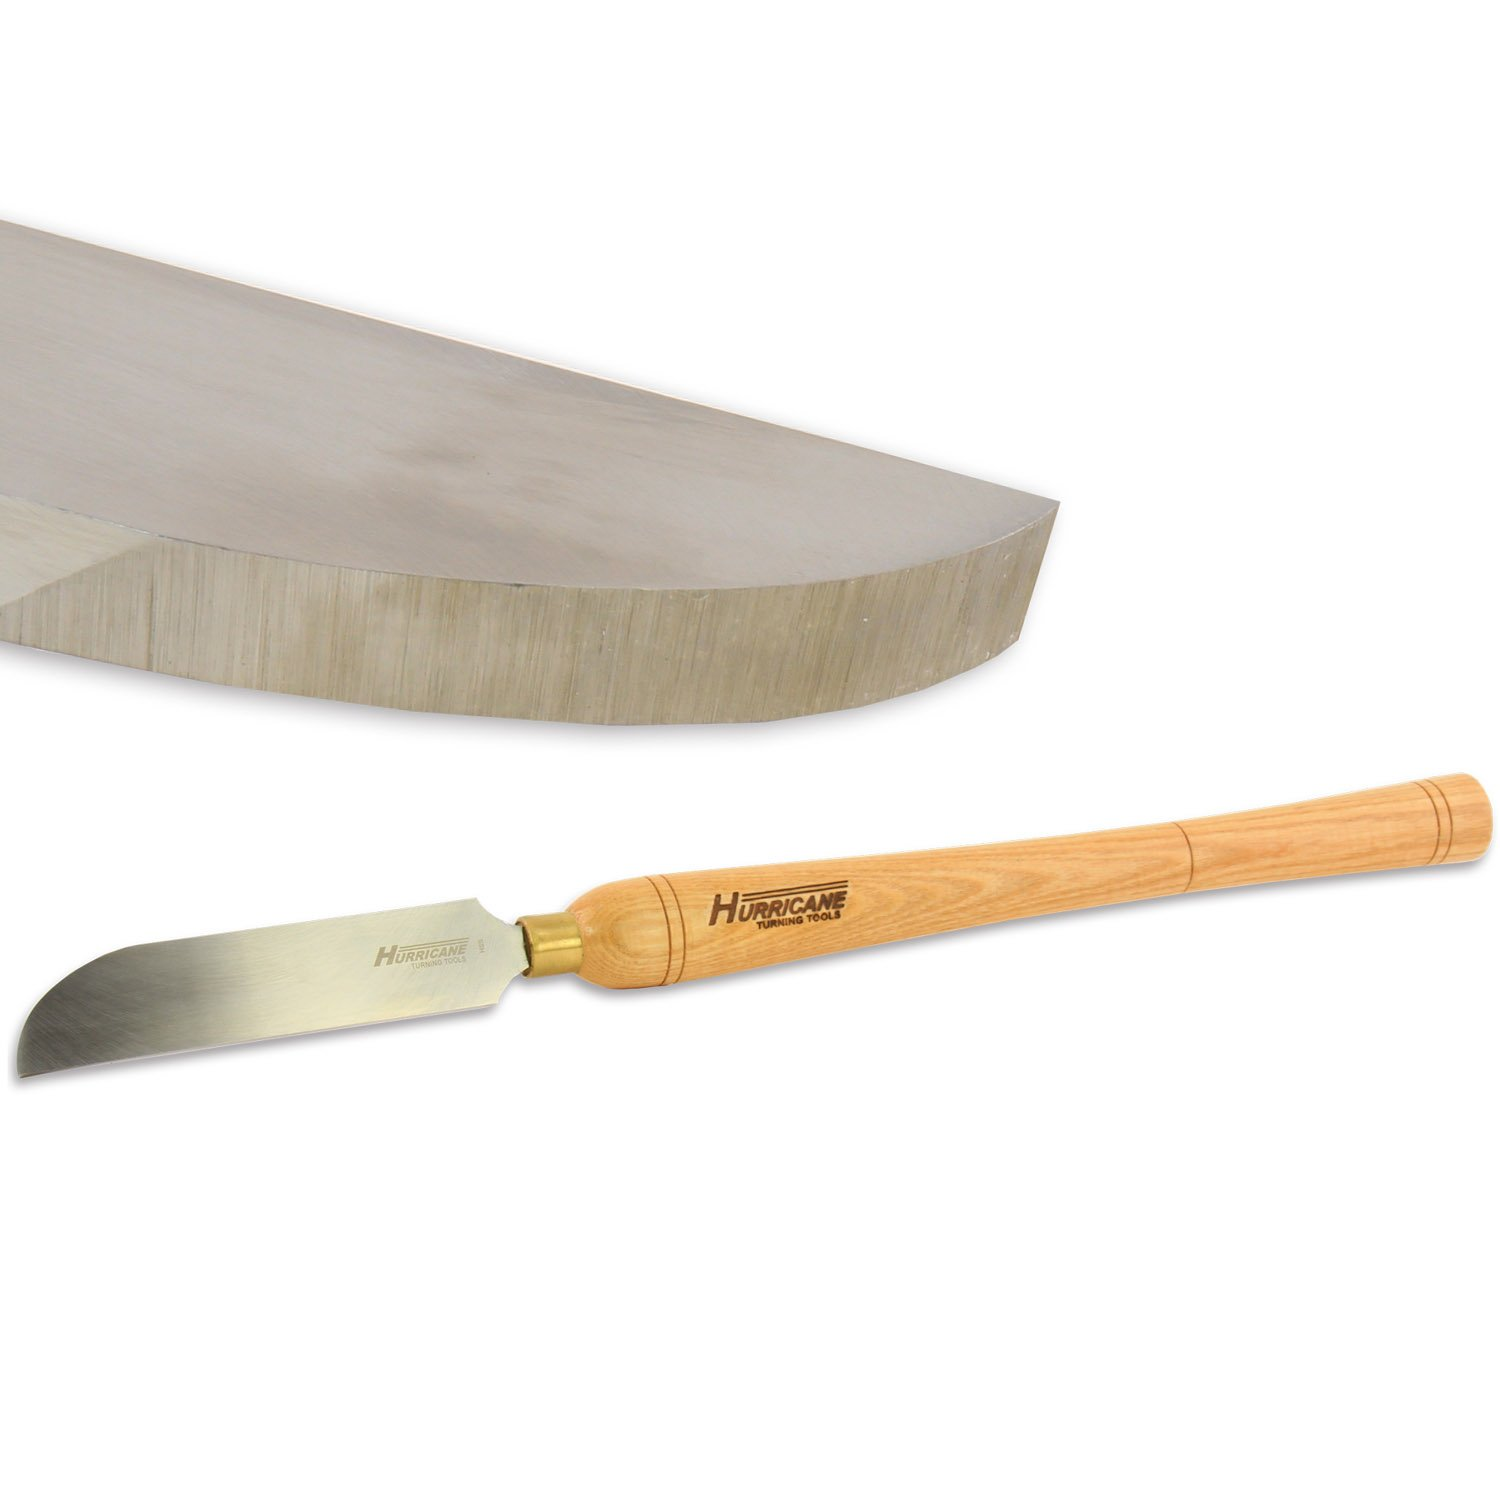 Hurricane Woodturning Right Side Curved Scraper, 1 1/2'' Wide, High Speed Steel w Handle, HTT-120